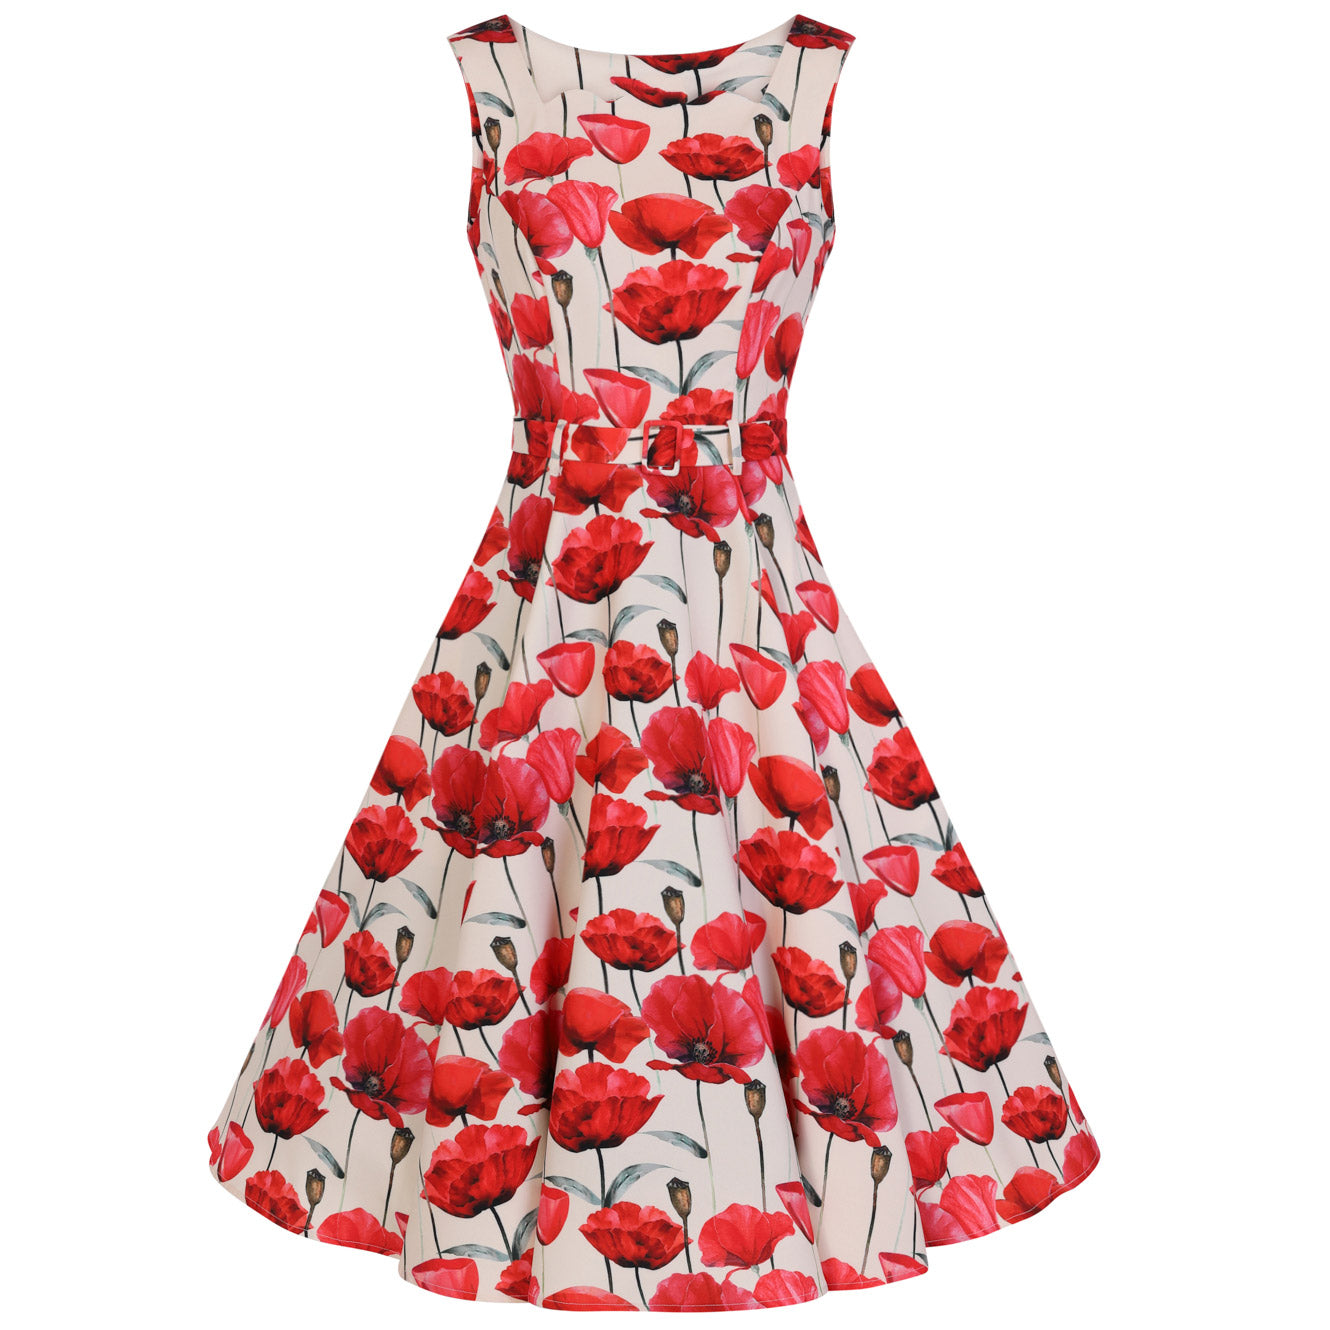 722bf3e63cfb Off White Red Poppy Vintage Belted 1950s Swing Dress